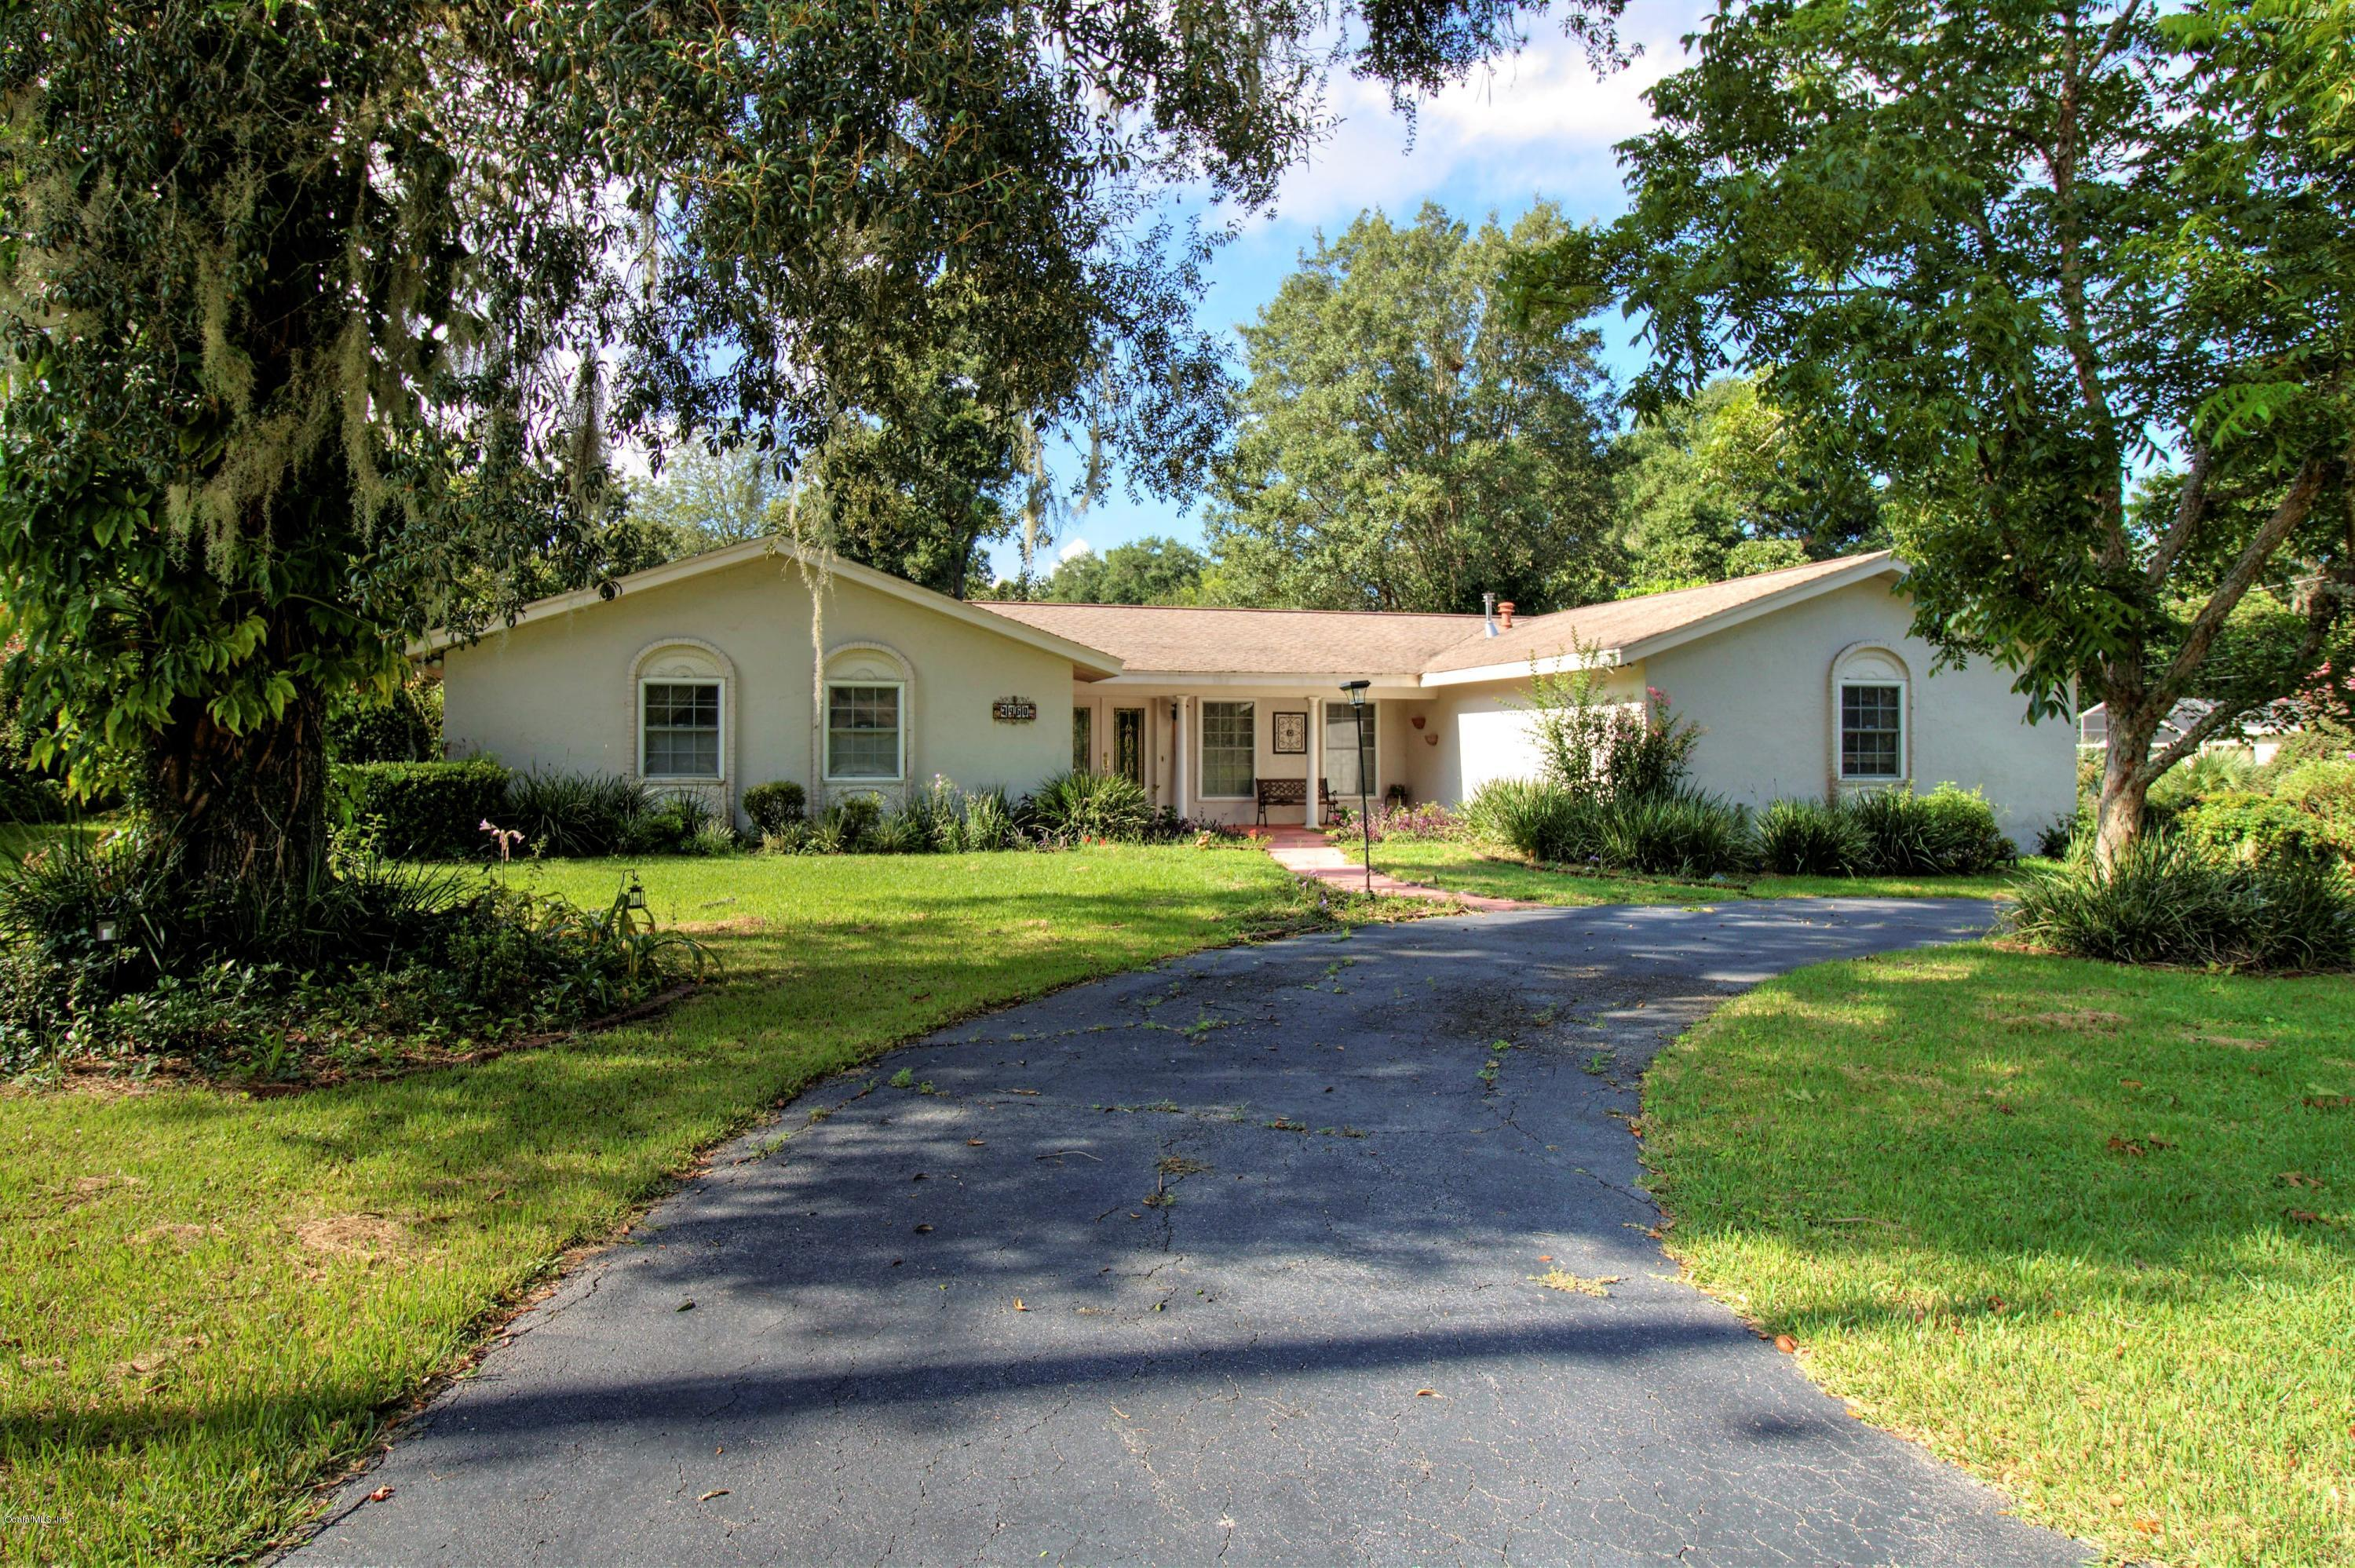 3960 SE 17TH STREET, OCALA, FL 34471